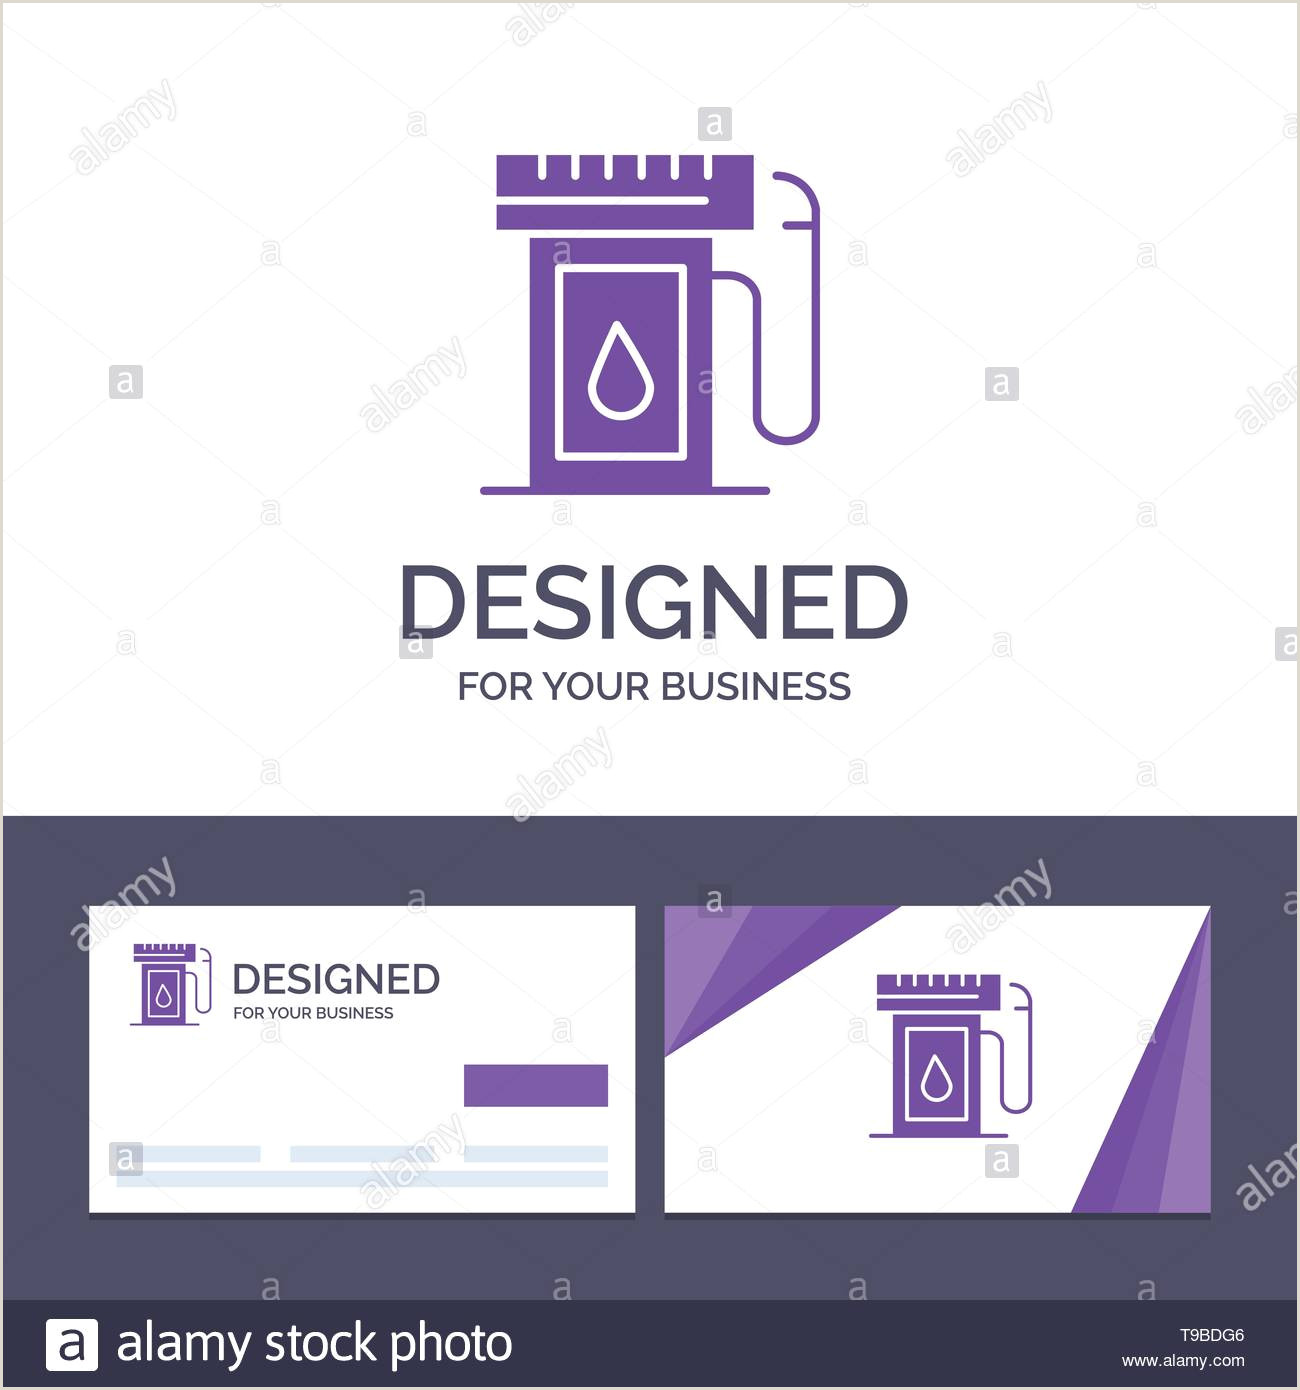 Best Business Cards For Fuel And Parts Page 3 Petrol Pump Card High Resolution Stock Graphy